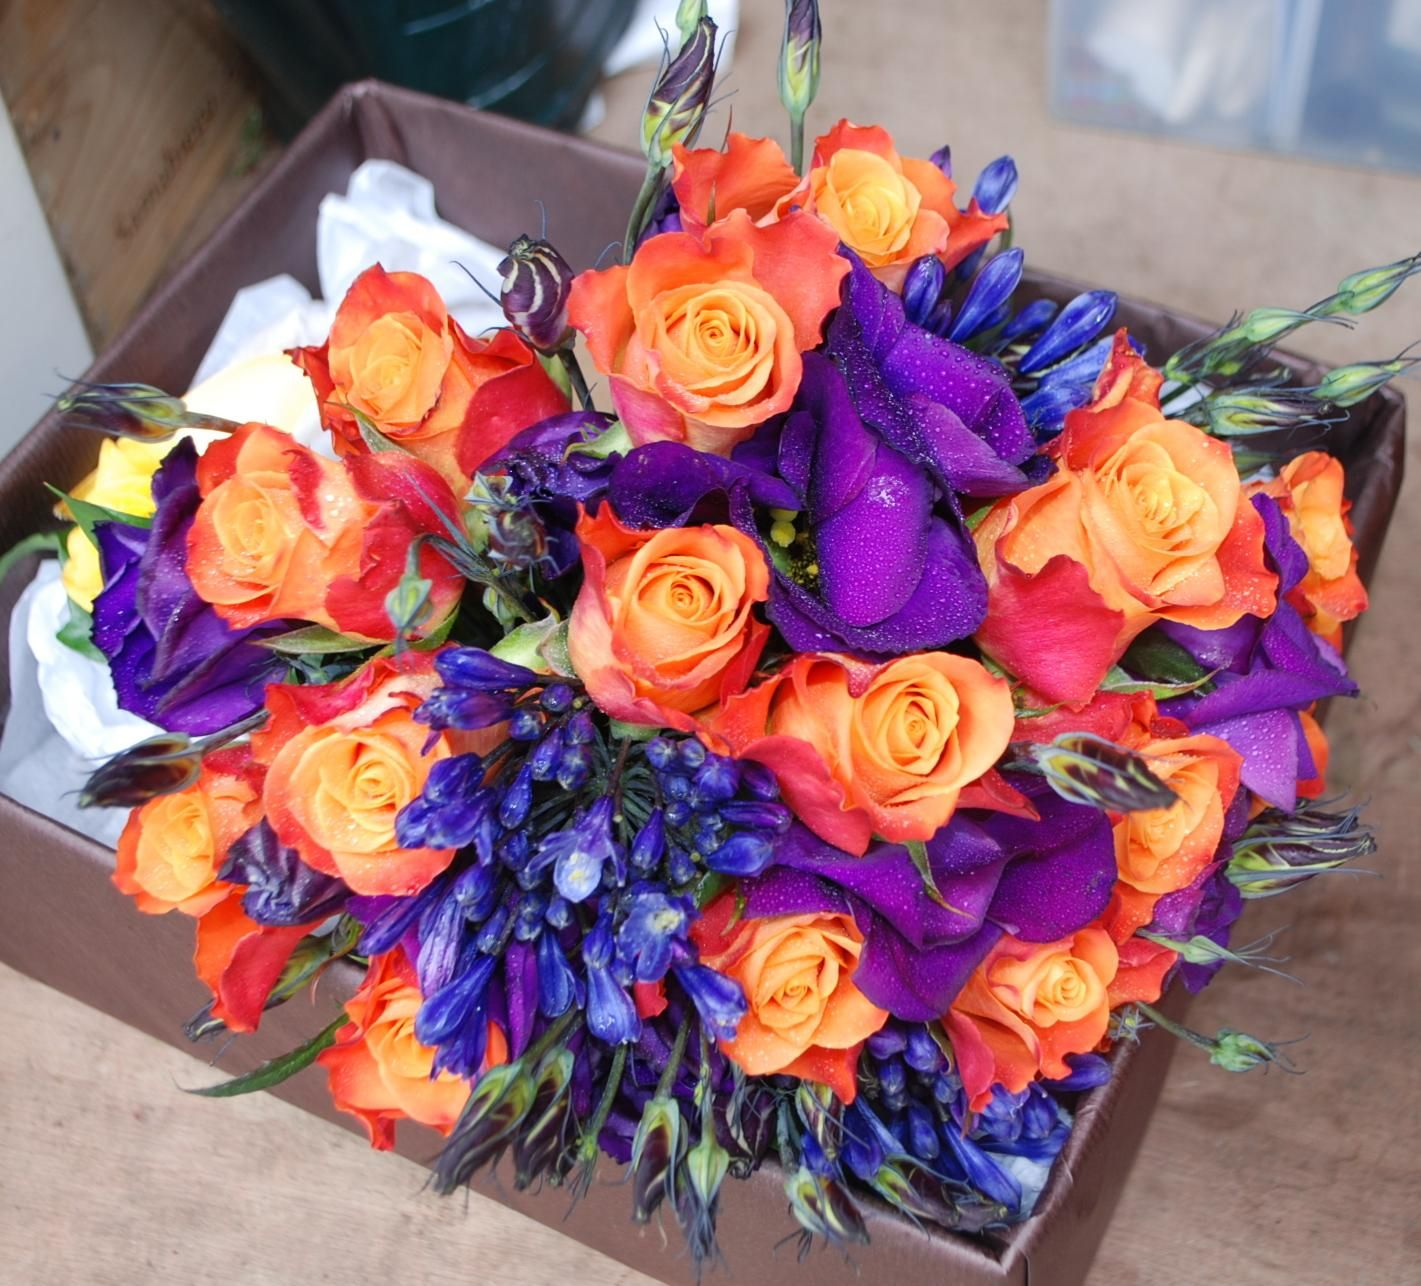 Find This Pin And More On Ana S Wedding Plans By Iwant20 Dark Purple Orange Flowersaugust 2010 Blue Sky Flowers Sxhtuwom